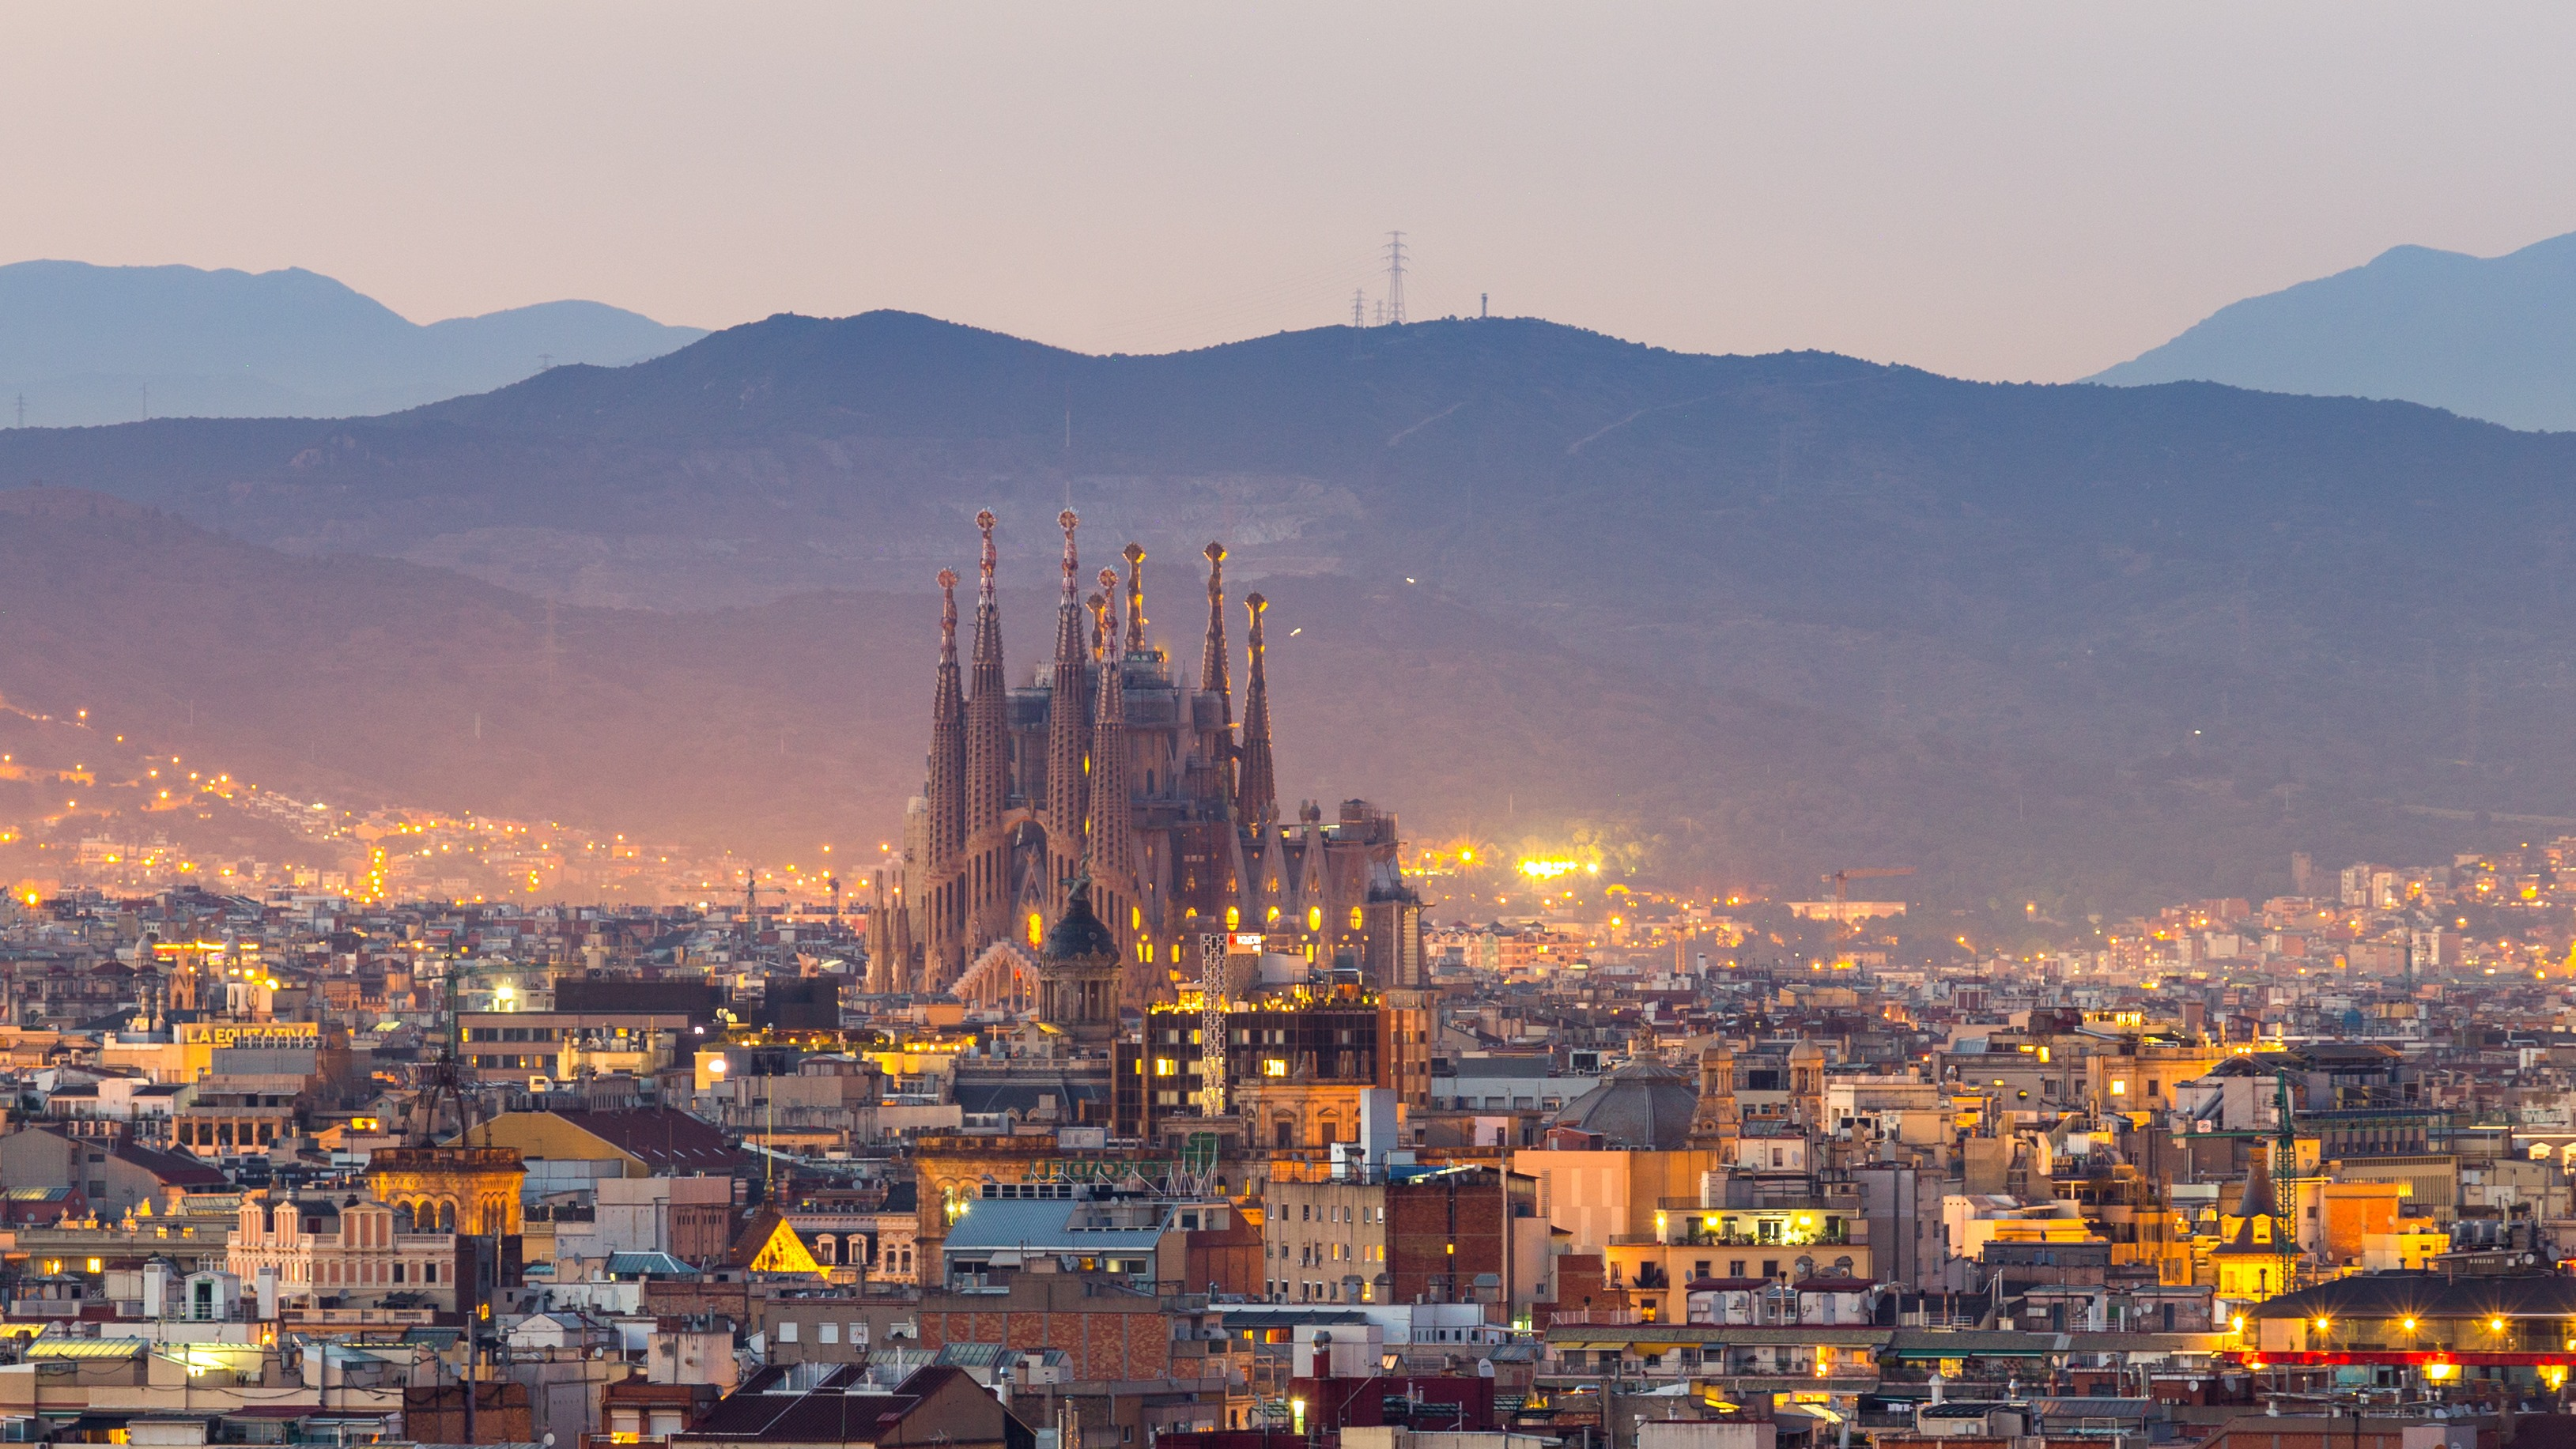 Valencia: The golden city of Spain